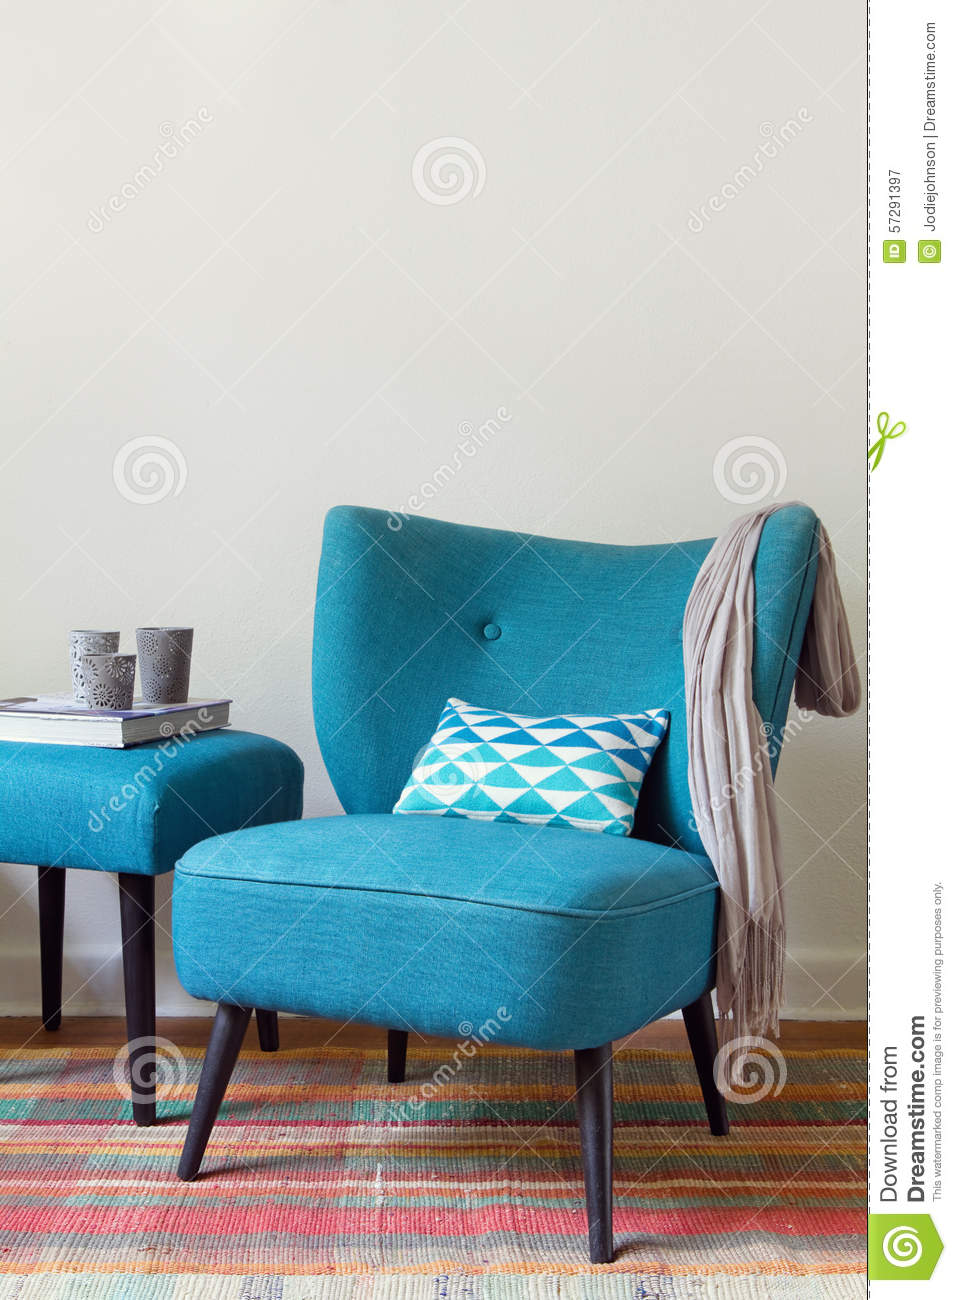 Retro Teal Armchair And Matching Ottoman With Decor